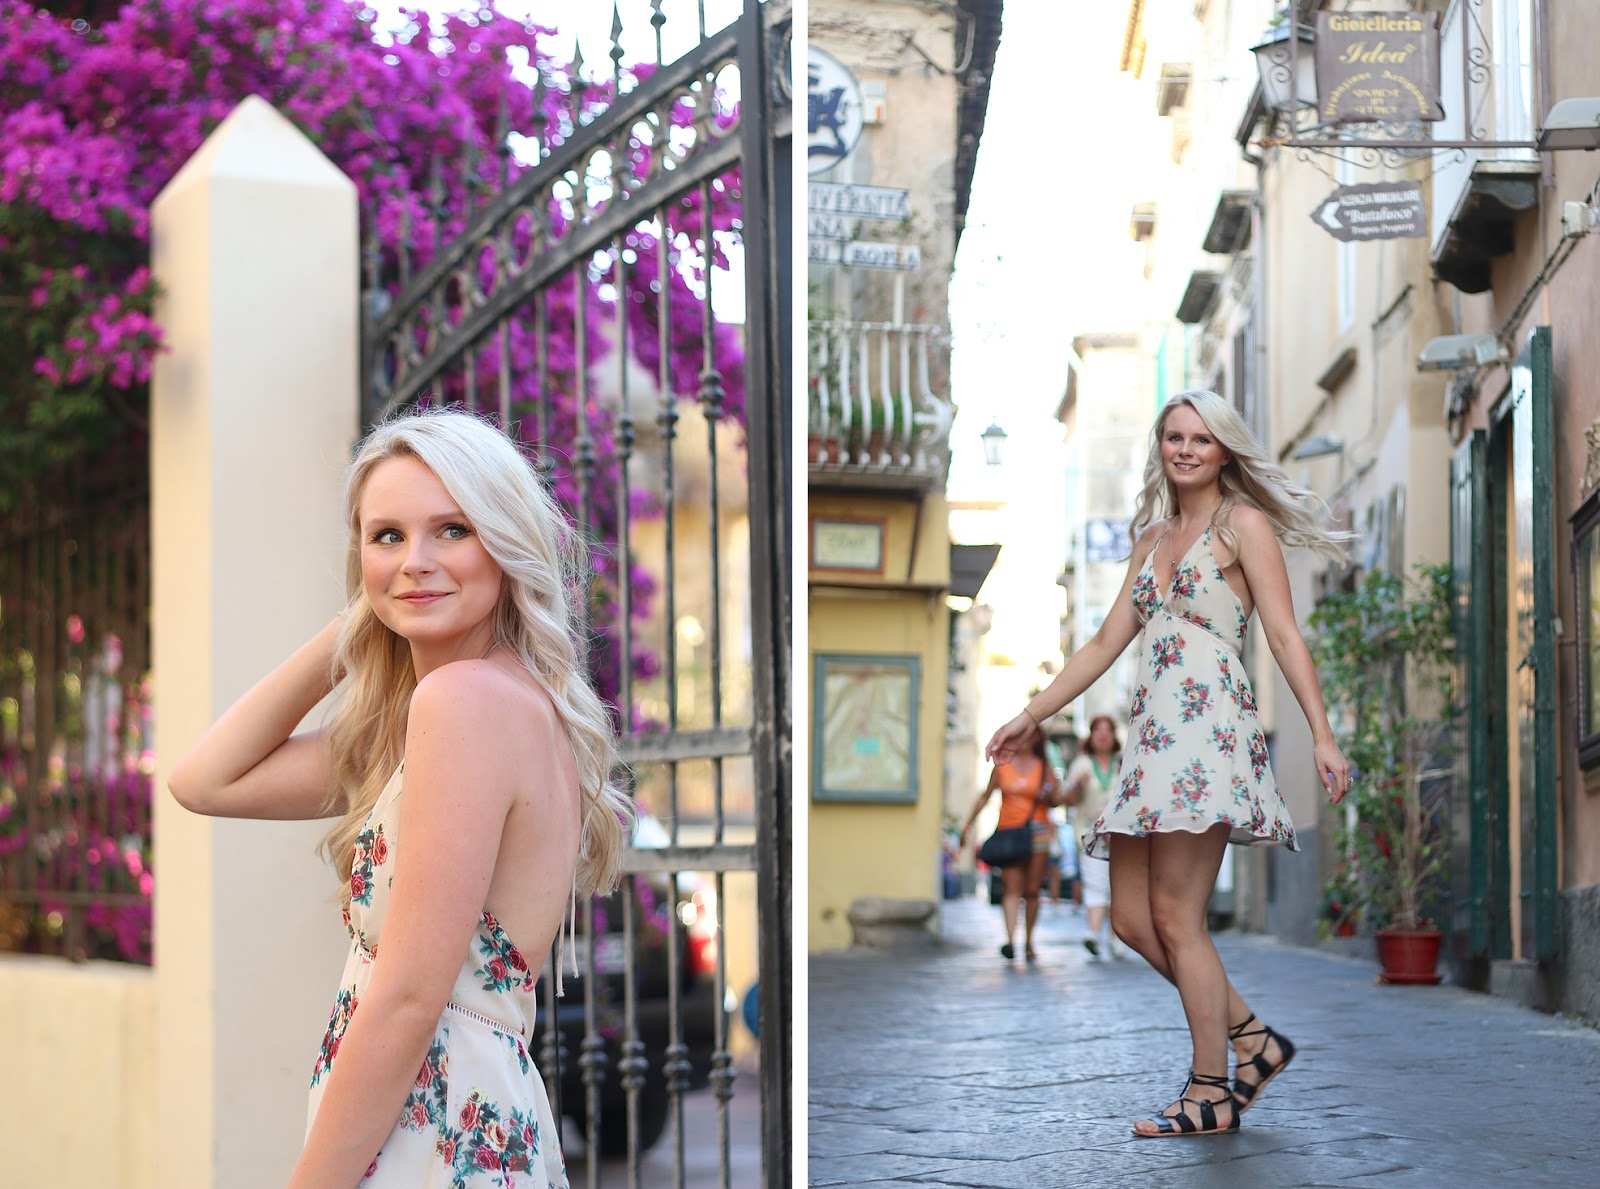 a blonde girl happily twirls in the streets of italy while on holiday, wearing a cute floral dress